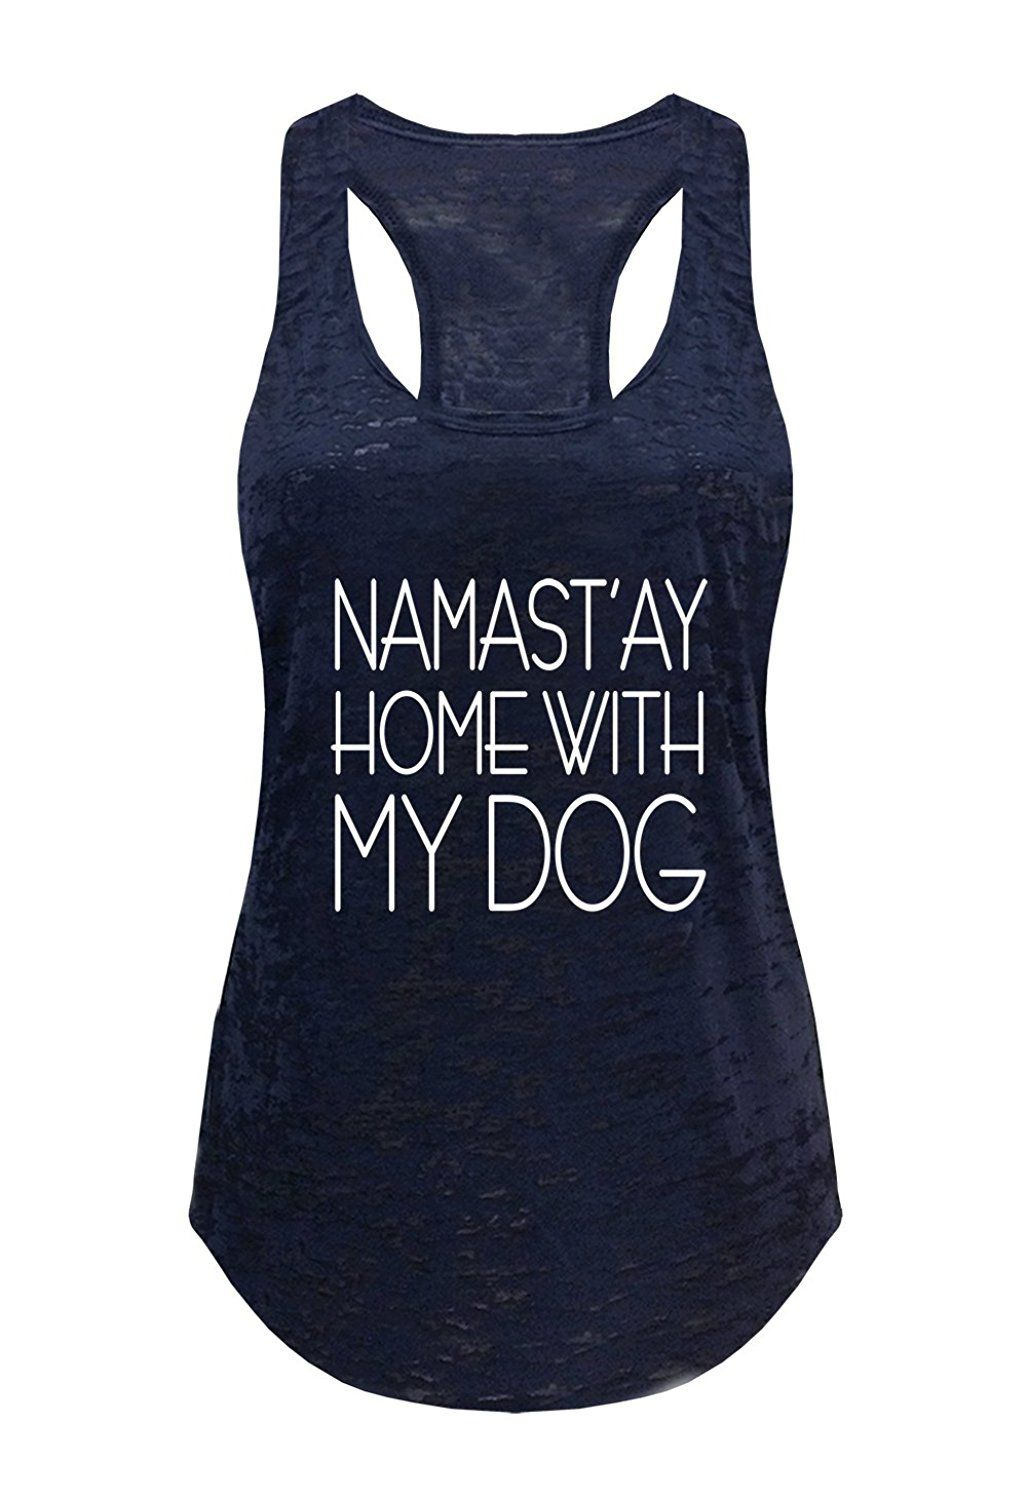 1de664210b0962 Tough Cookie s Women s Yoga Burnout Namastay At Home With My Dog Tank Top  at Amazon Women s Clothing store